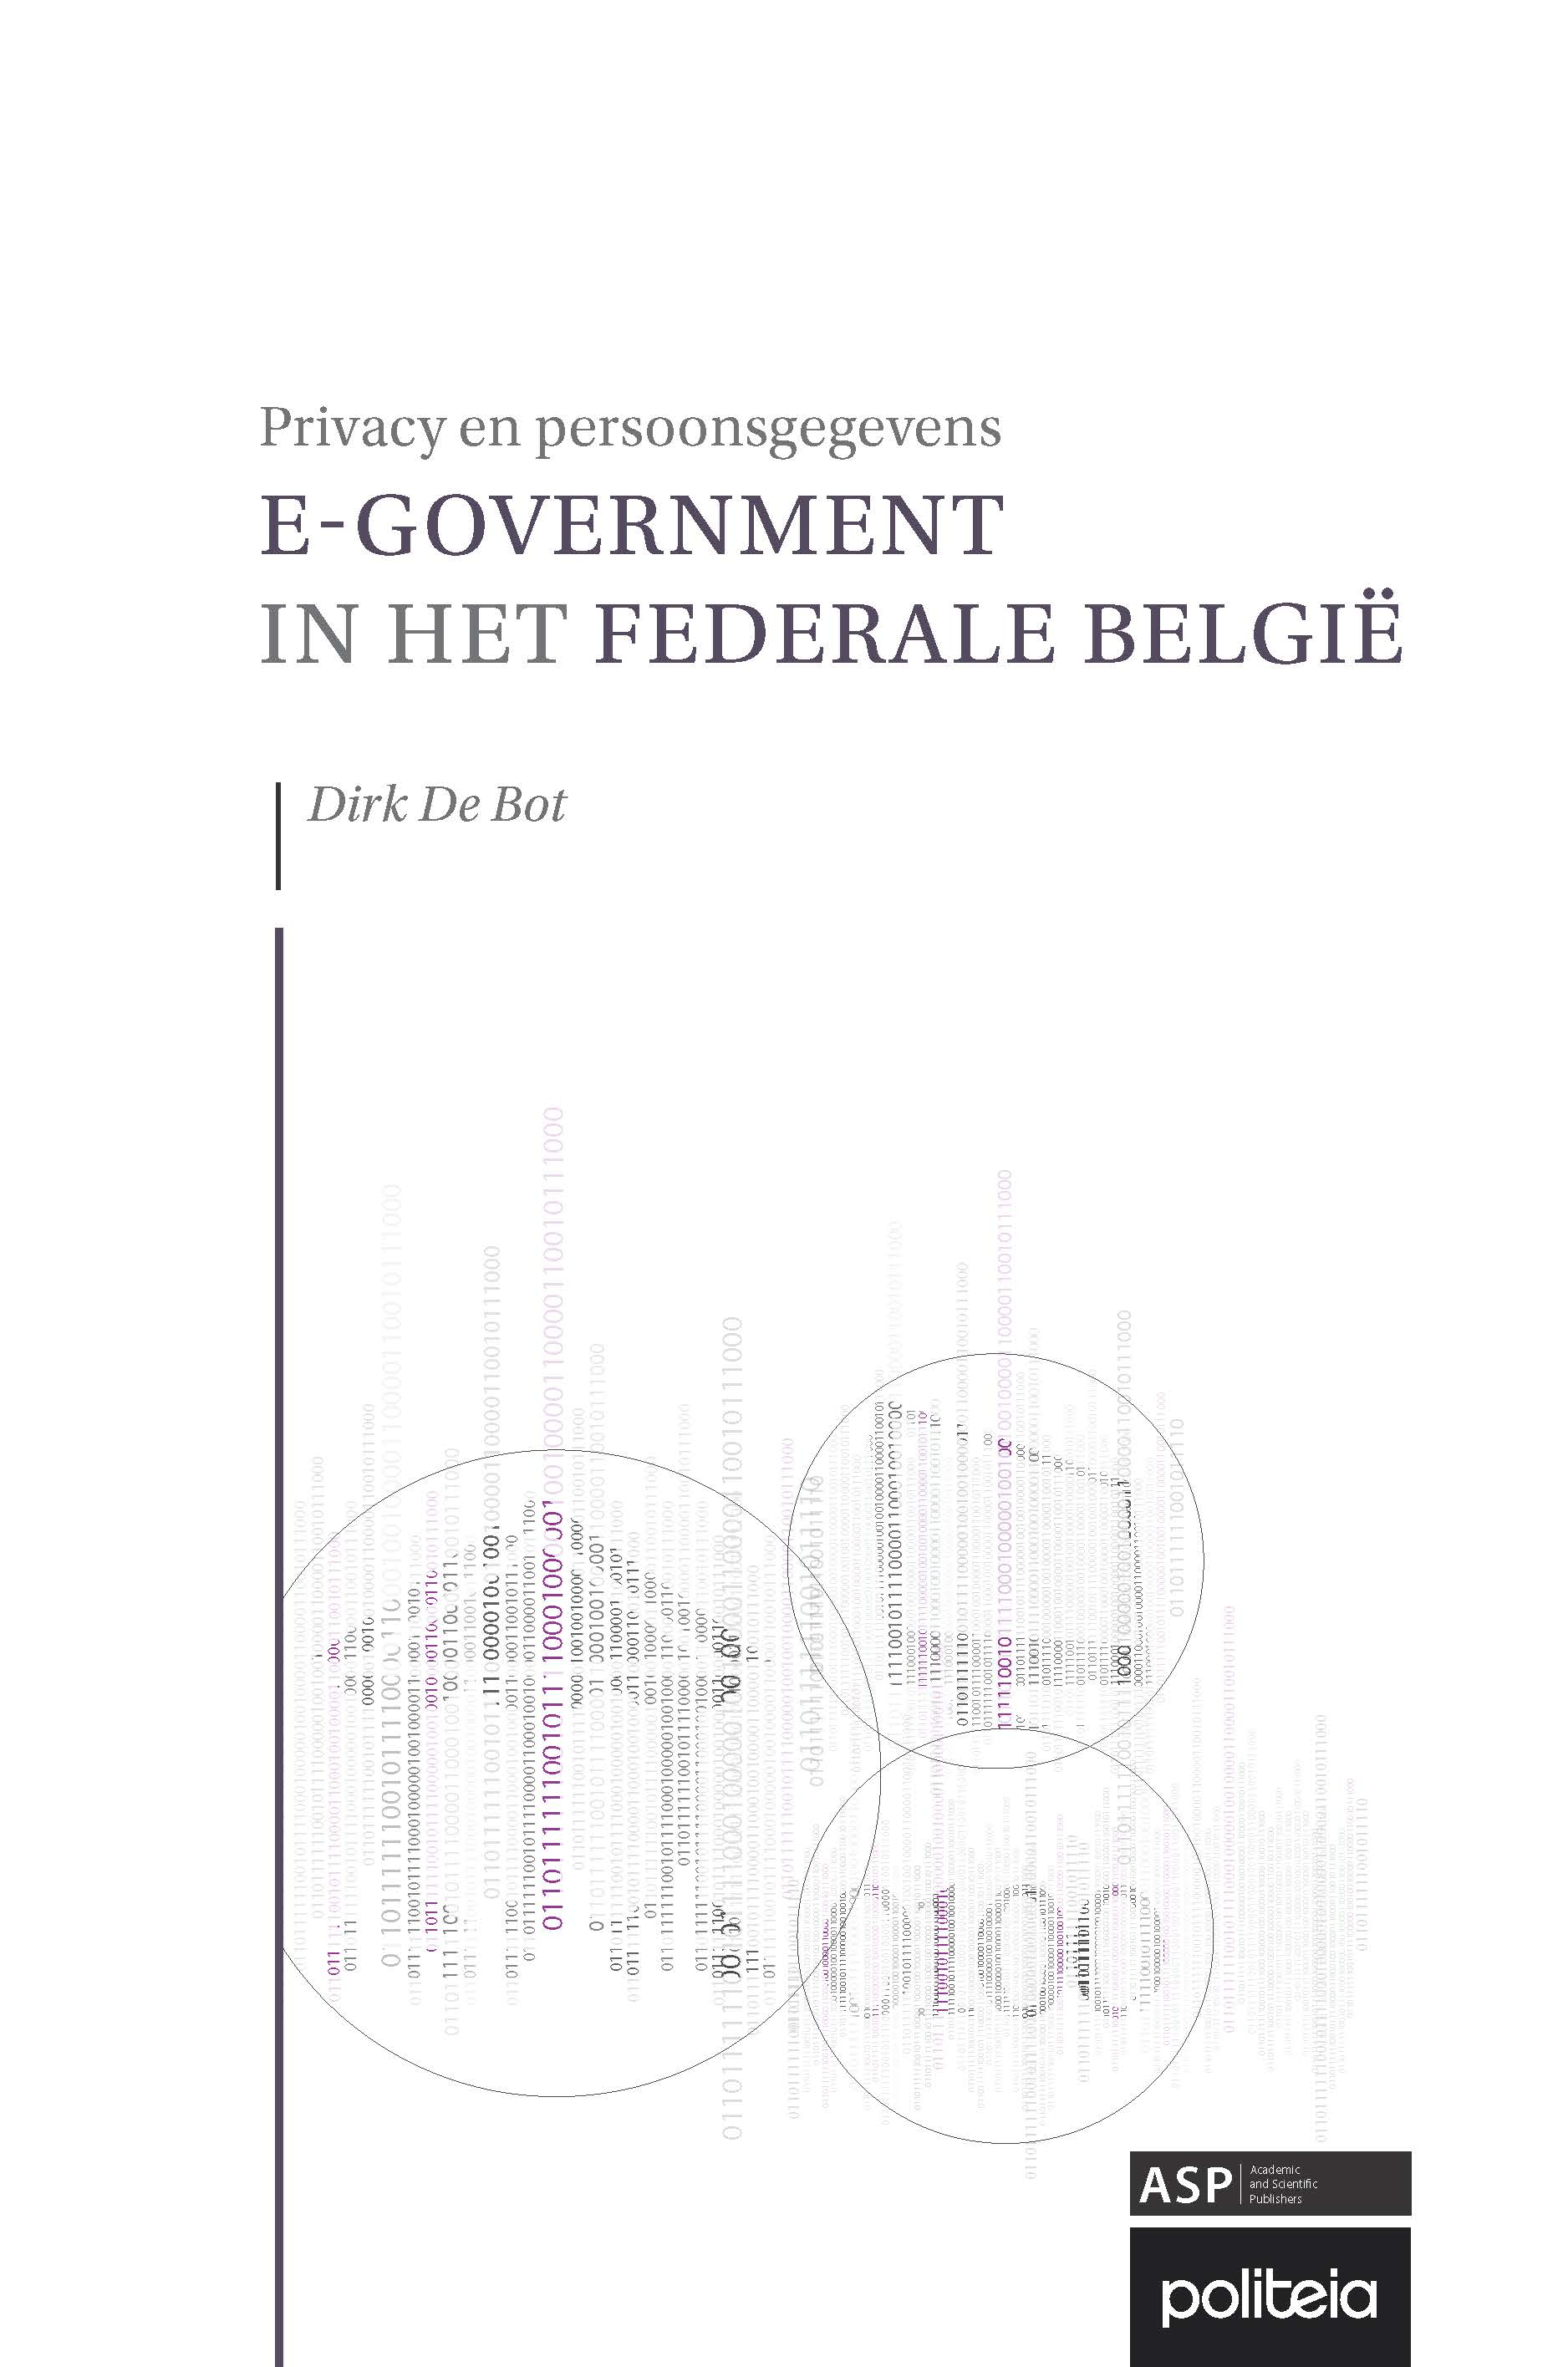 E-GOVERNMENT IN HET FEDERALE BELGIË